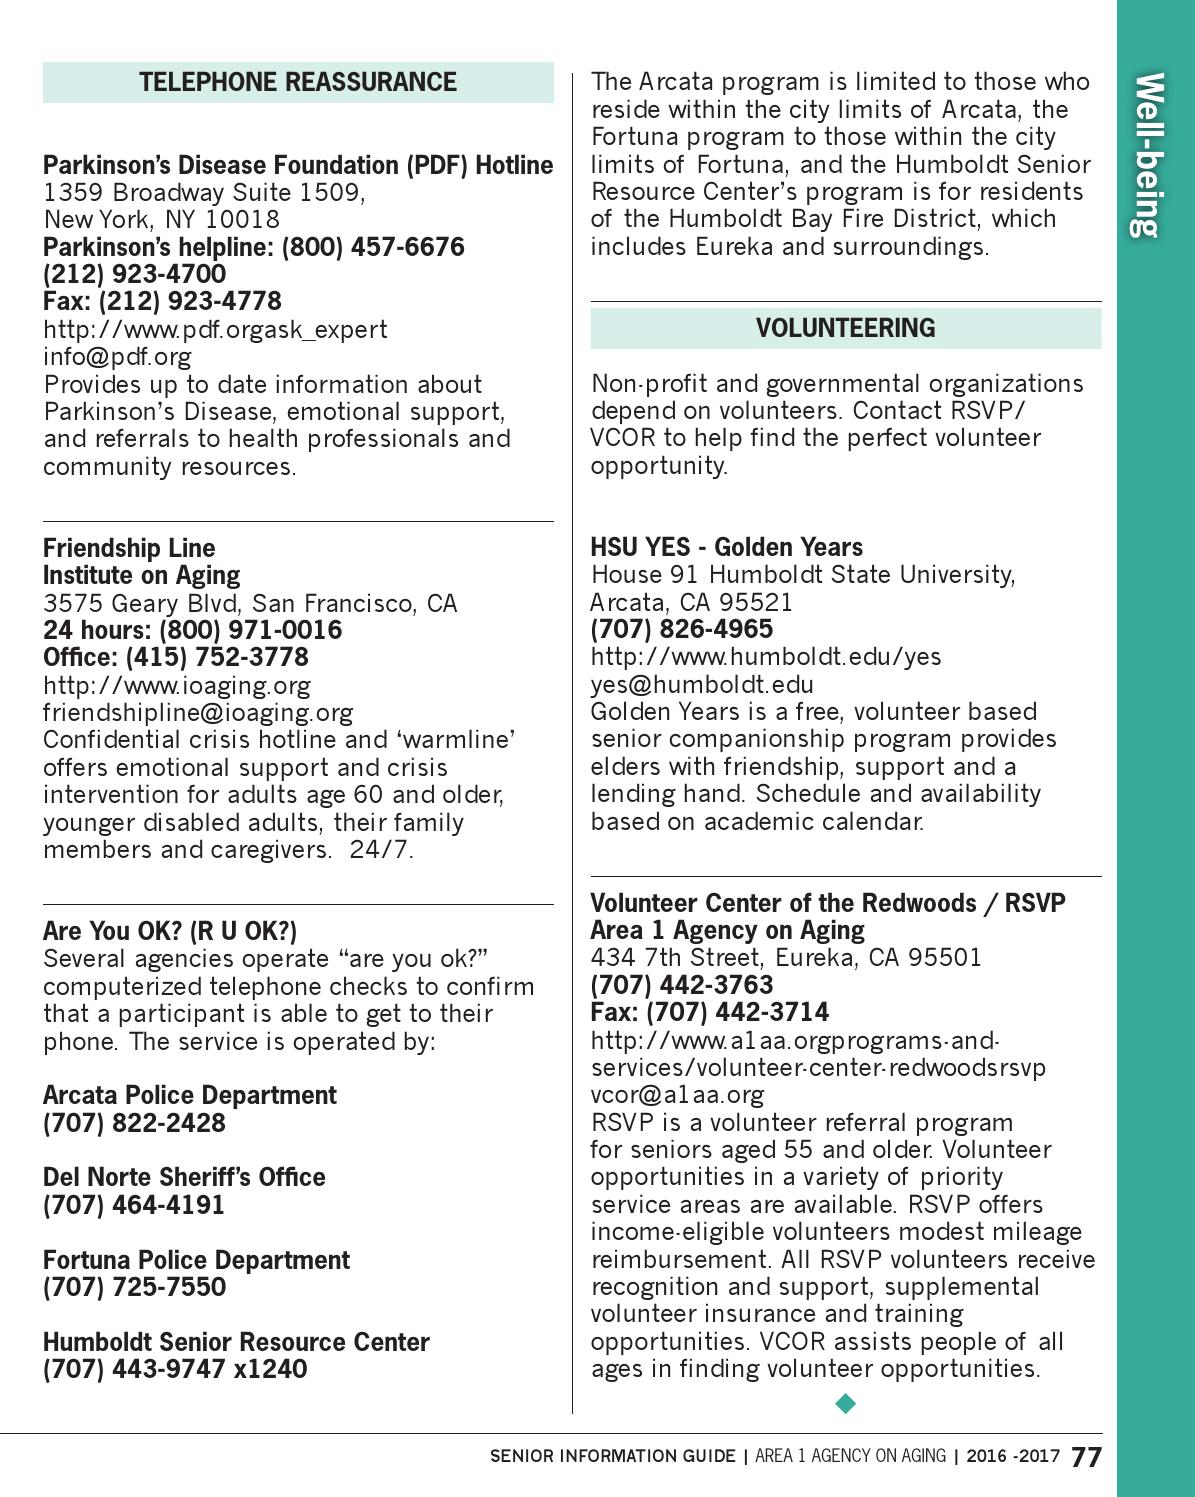 Senior Information Guide 2016 2017Area 1 Agency On Aging Within Academic Calendar Humboldt State University